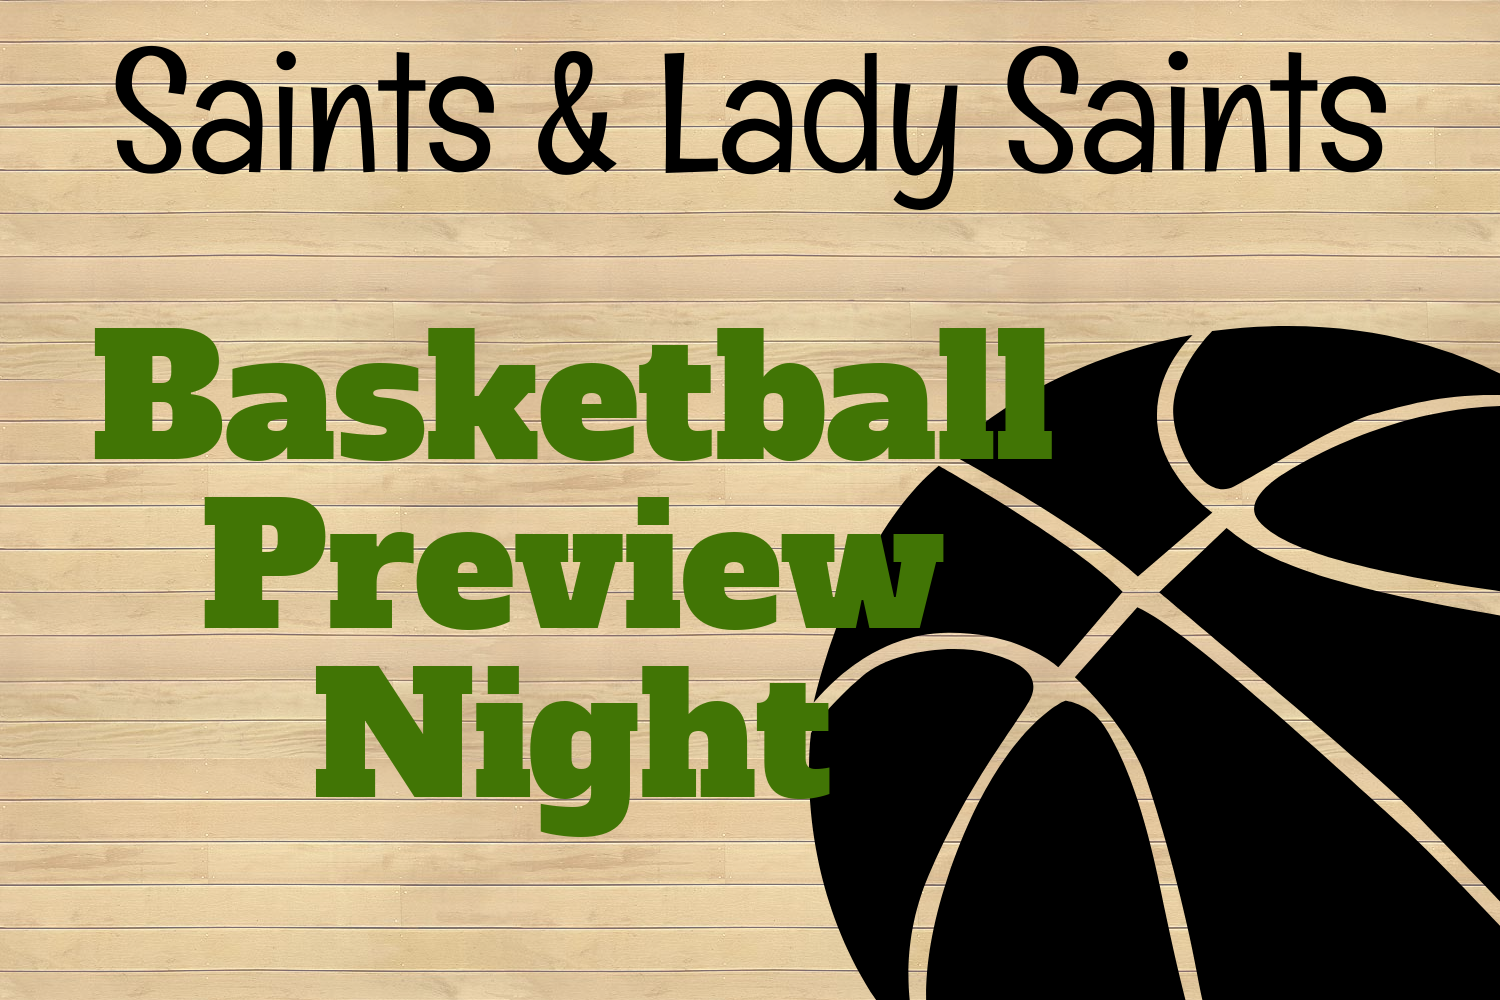 The Saints and Lady Saints basketball teams held their Preview Night in the Greenhouse on Wednesday. There were many fun events for the players and audience members throughout the night.